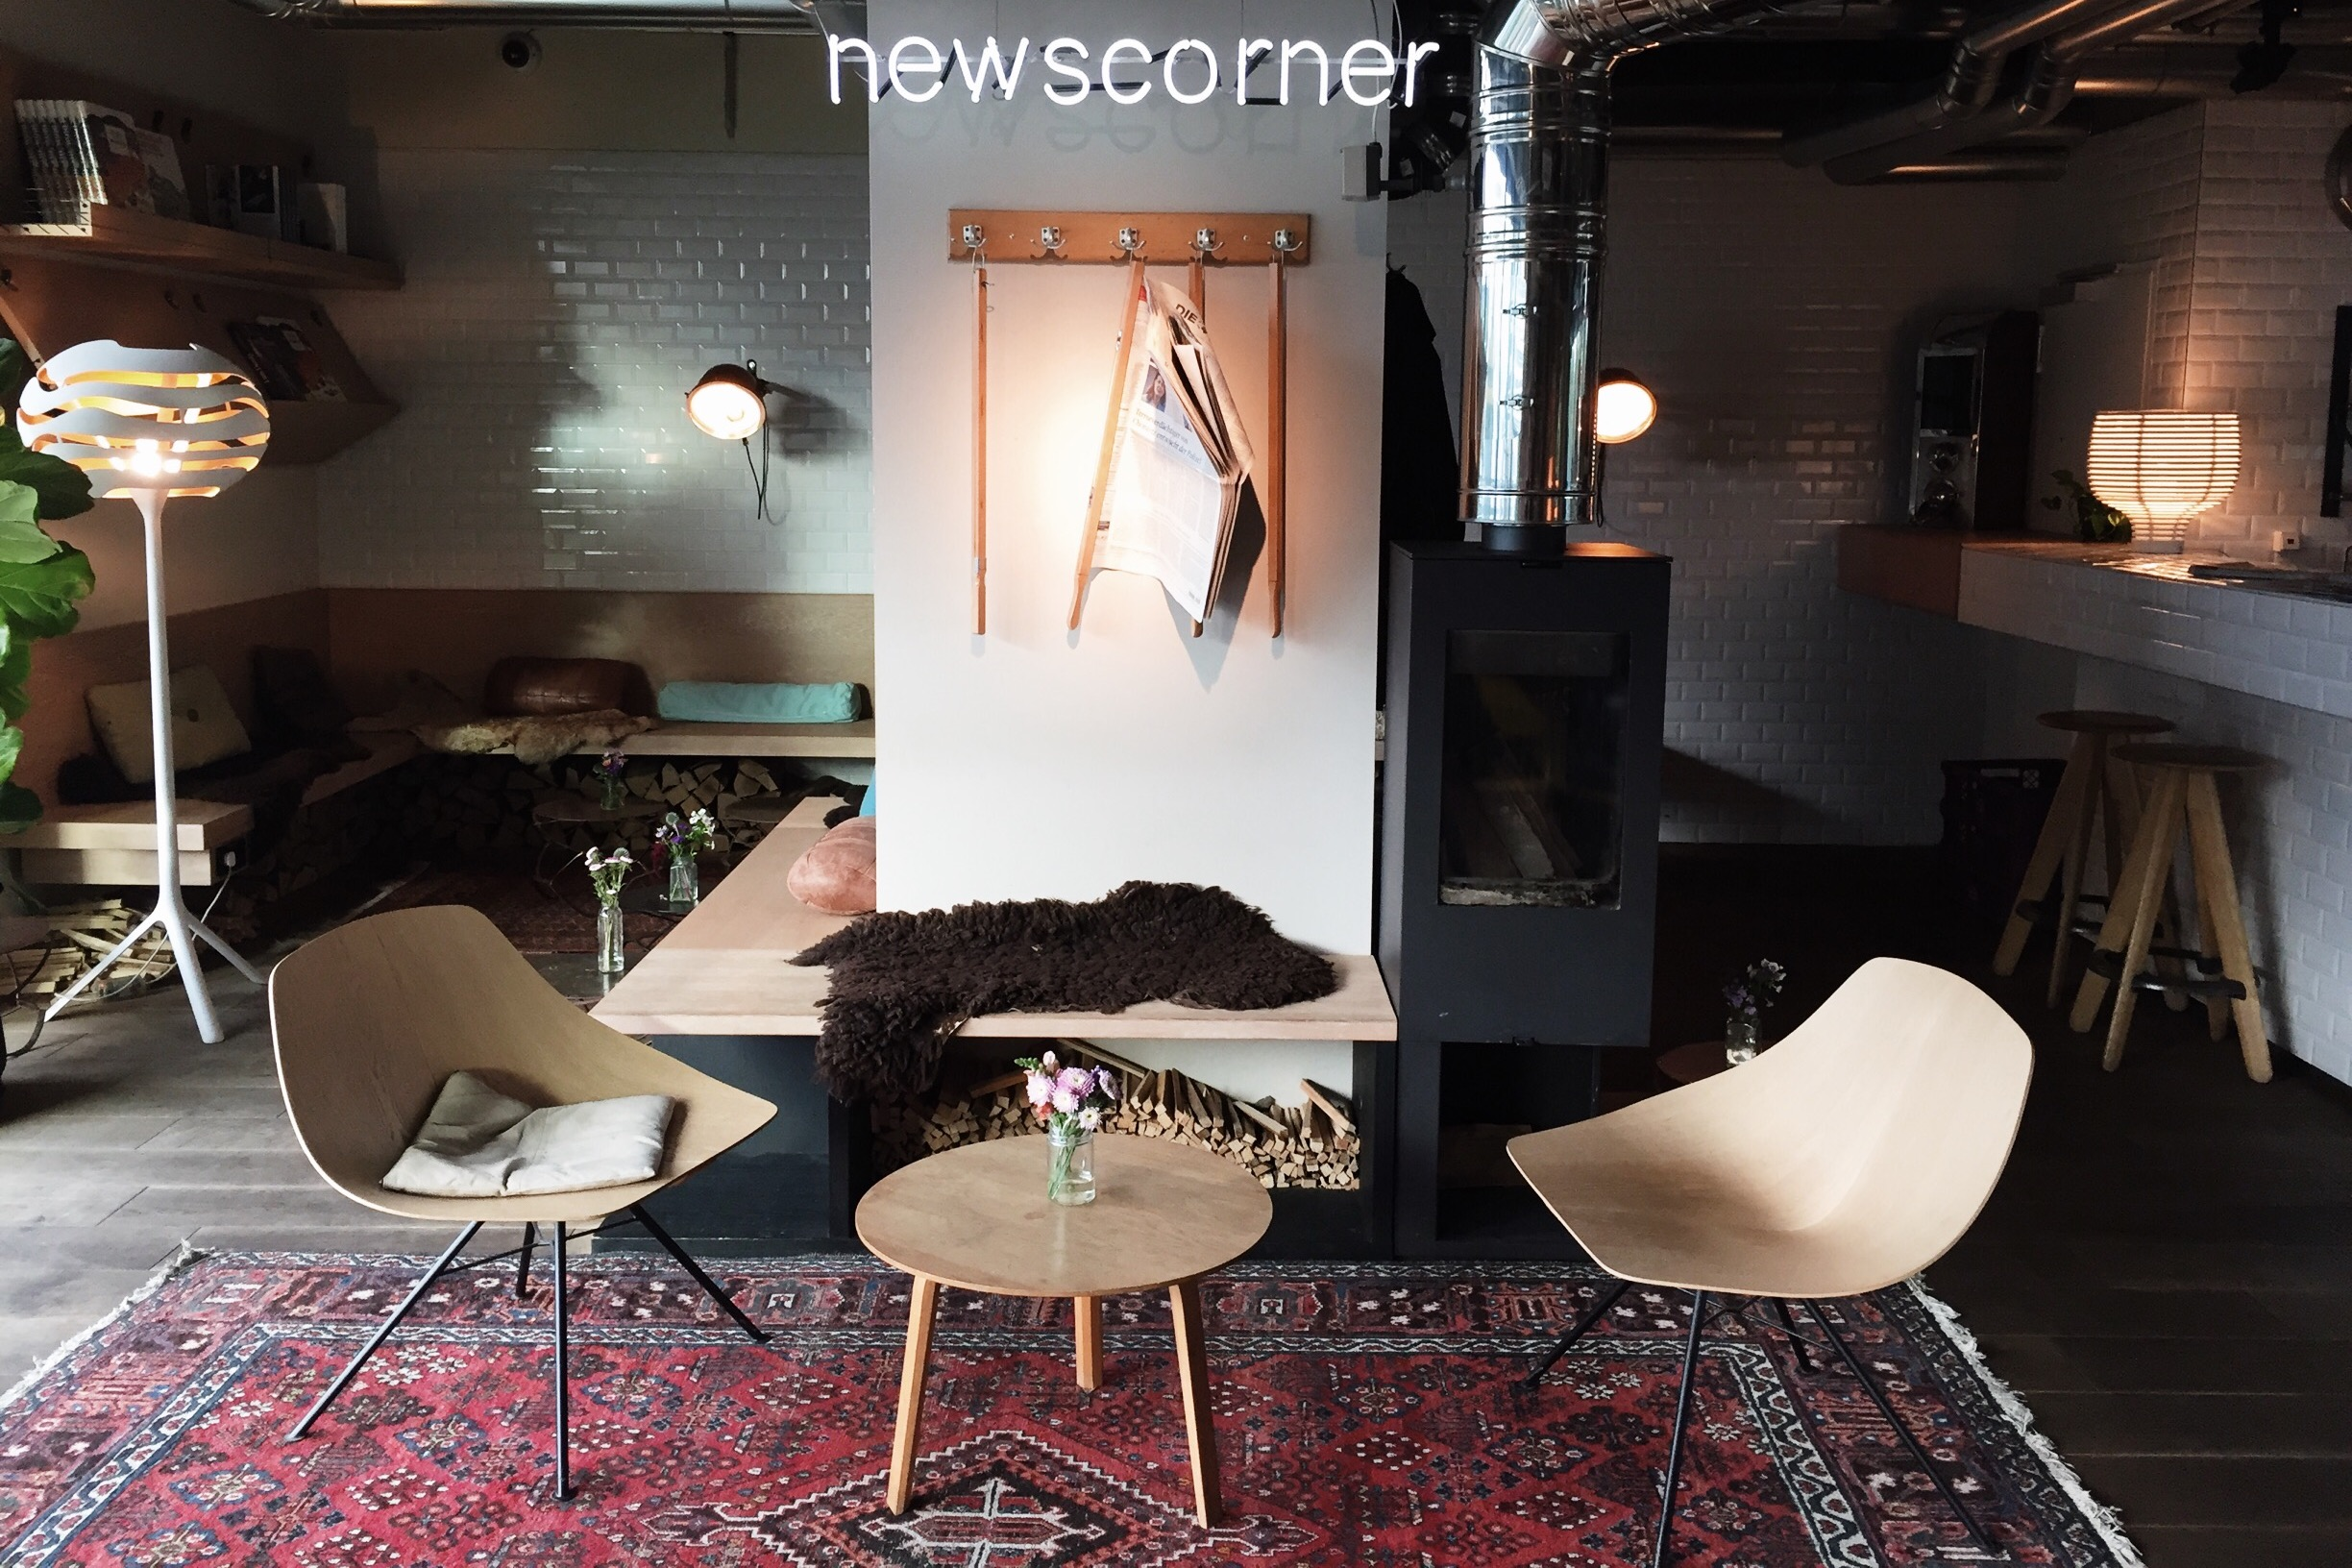 25Hours Hotel Berlin Newsroom